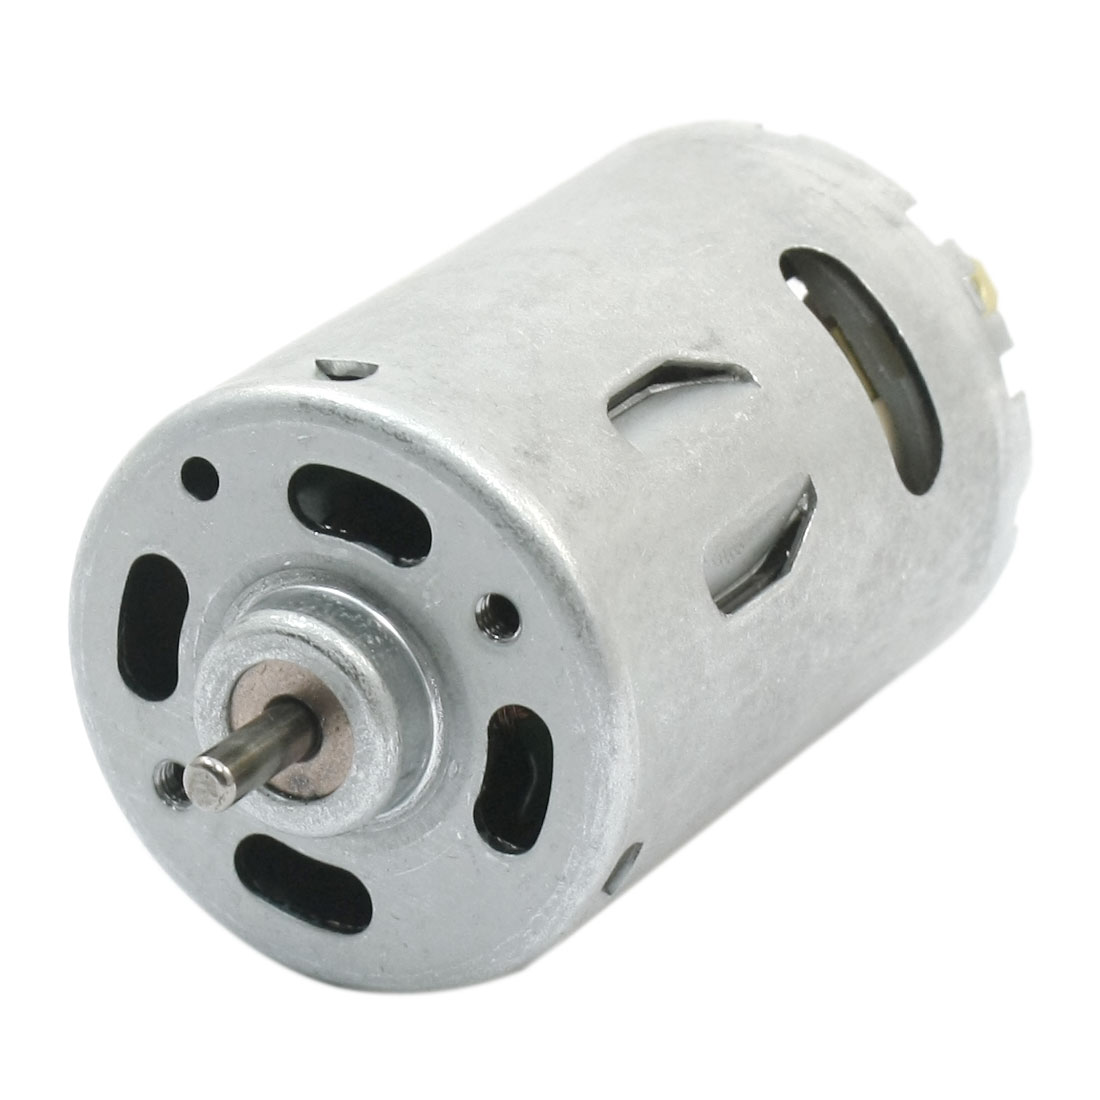 24V Connecting 4000rpm Rotary DC Gear Magnetic Motor